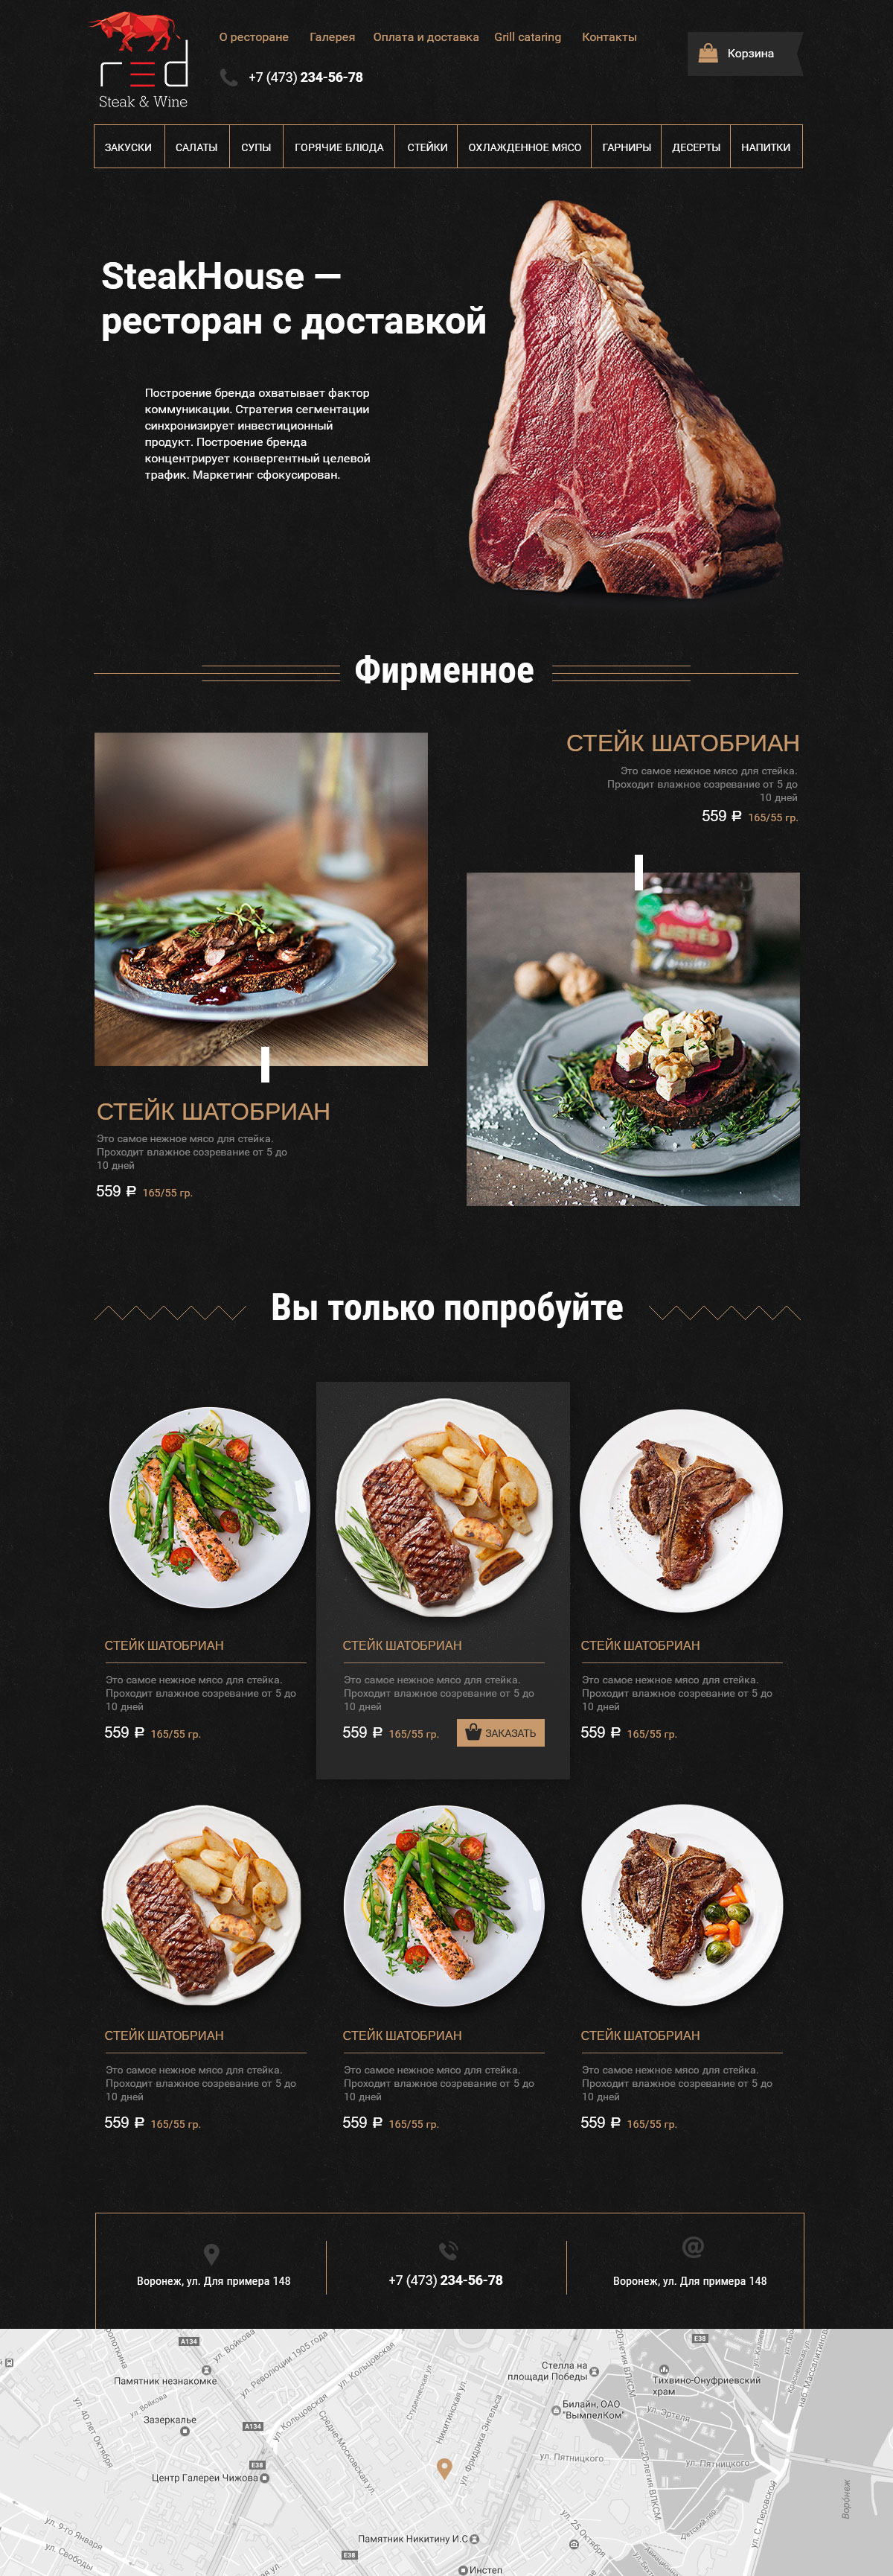 Стейк-хаус Red Steak & Wine 1920 px